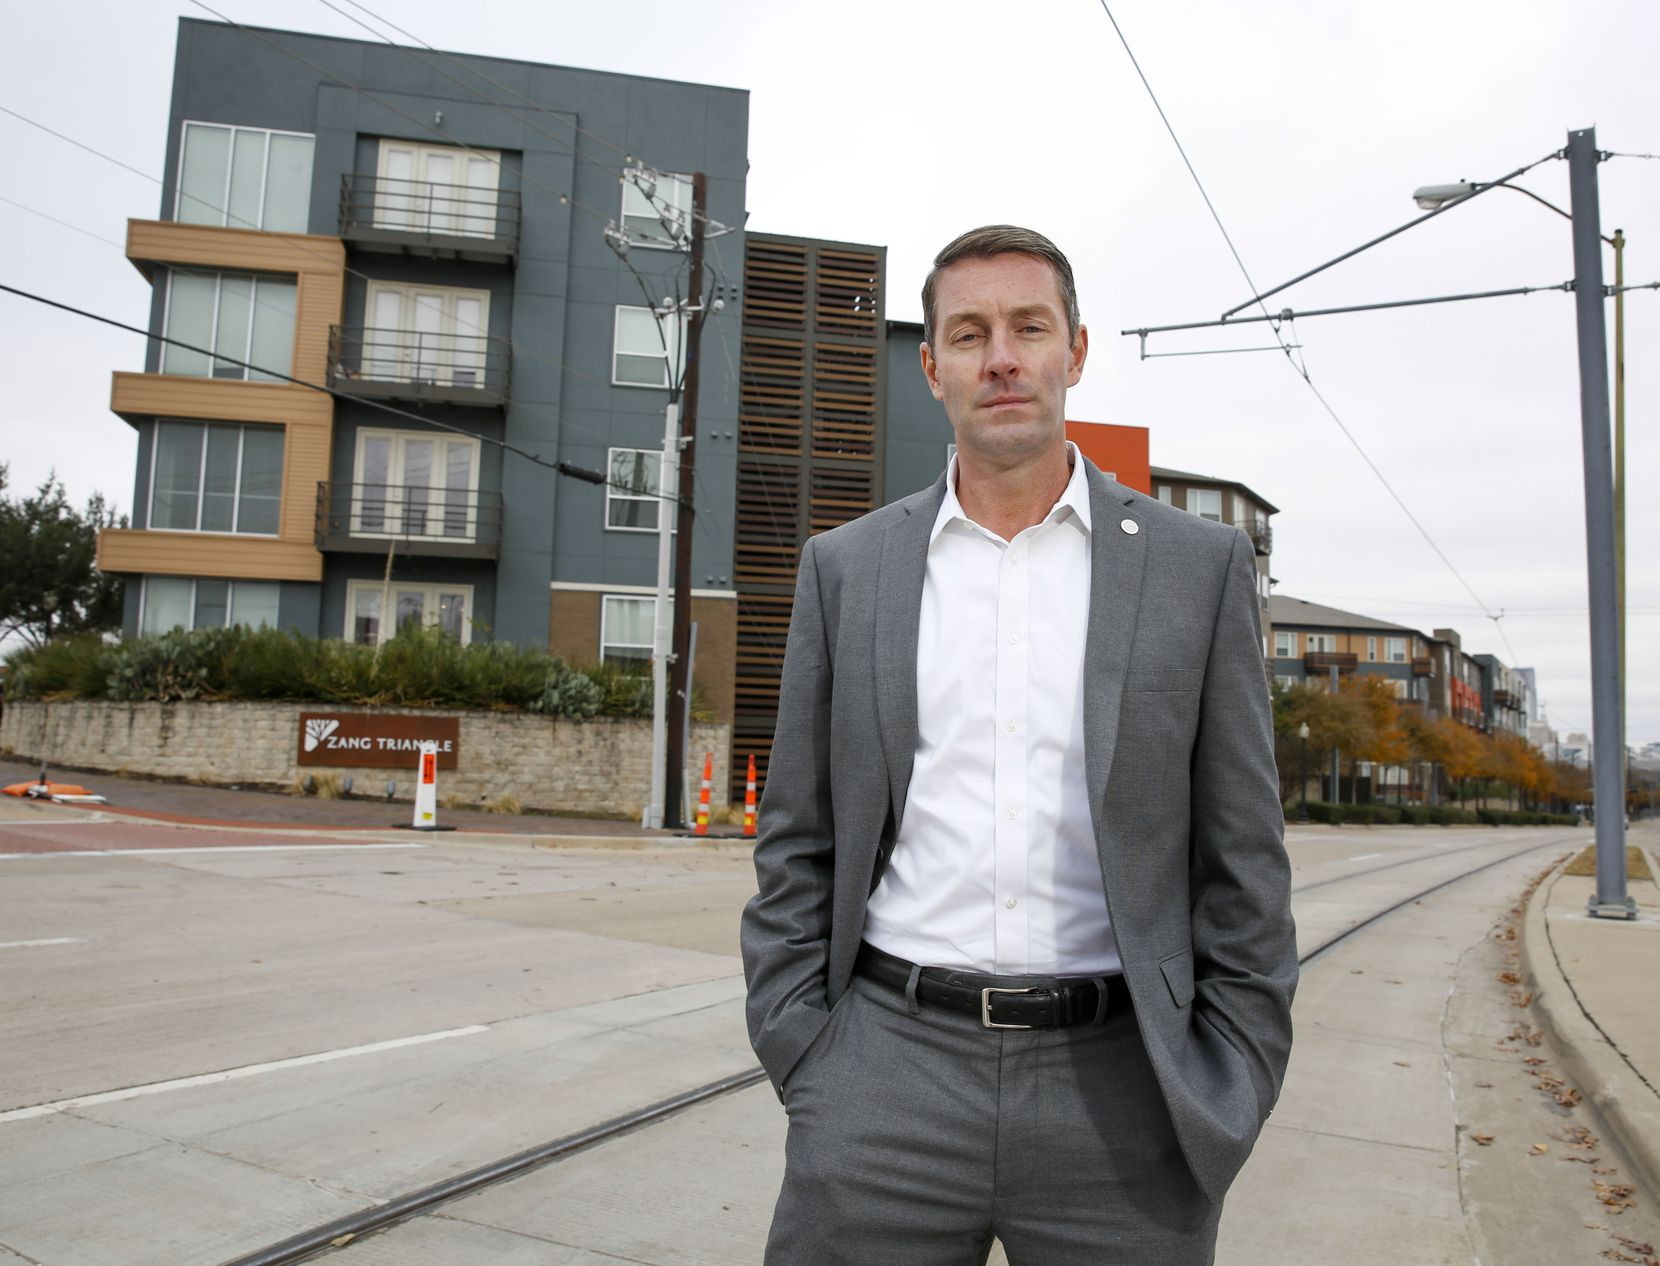 Dallas City Councilman Chad West standing on Zang Blvd. in the Oak Cliff neighborhood of Dallas Friday, November 22, 2019. West supported changing city policy to allow nonprofit developers of affordable housing to keep profits in order to build more.